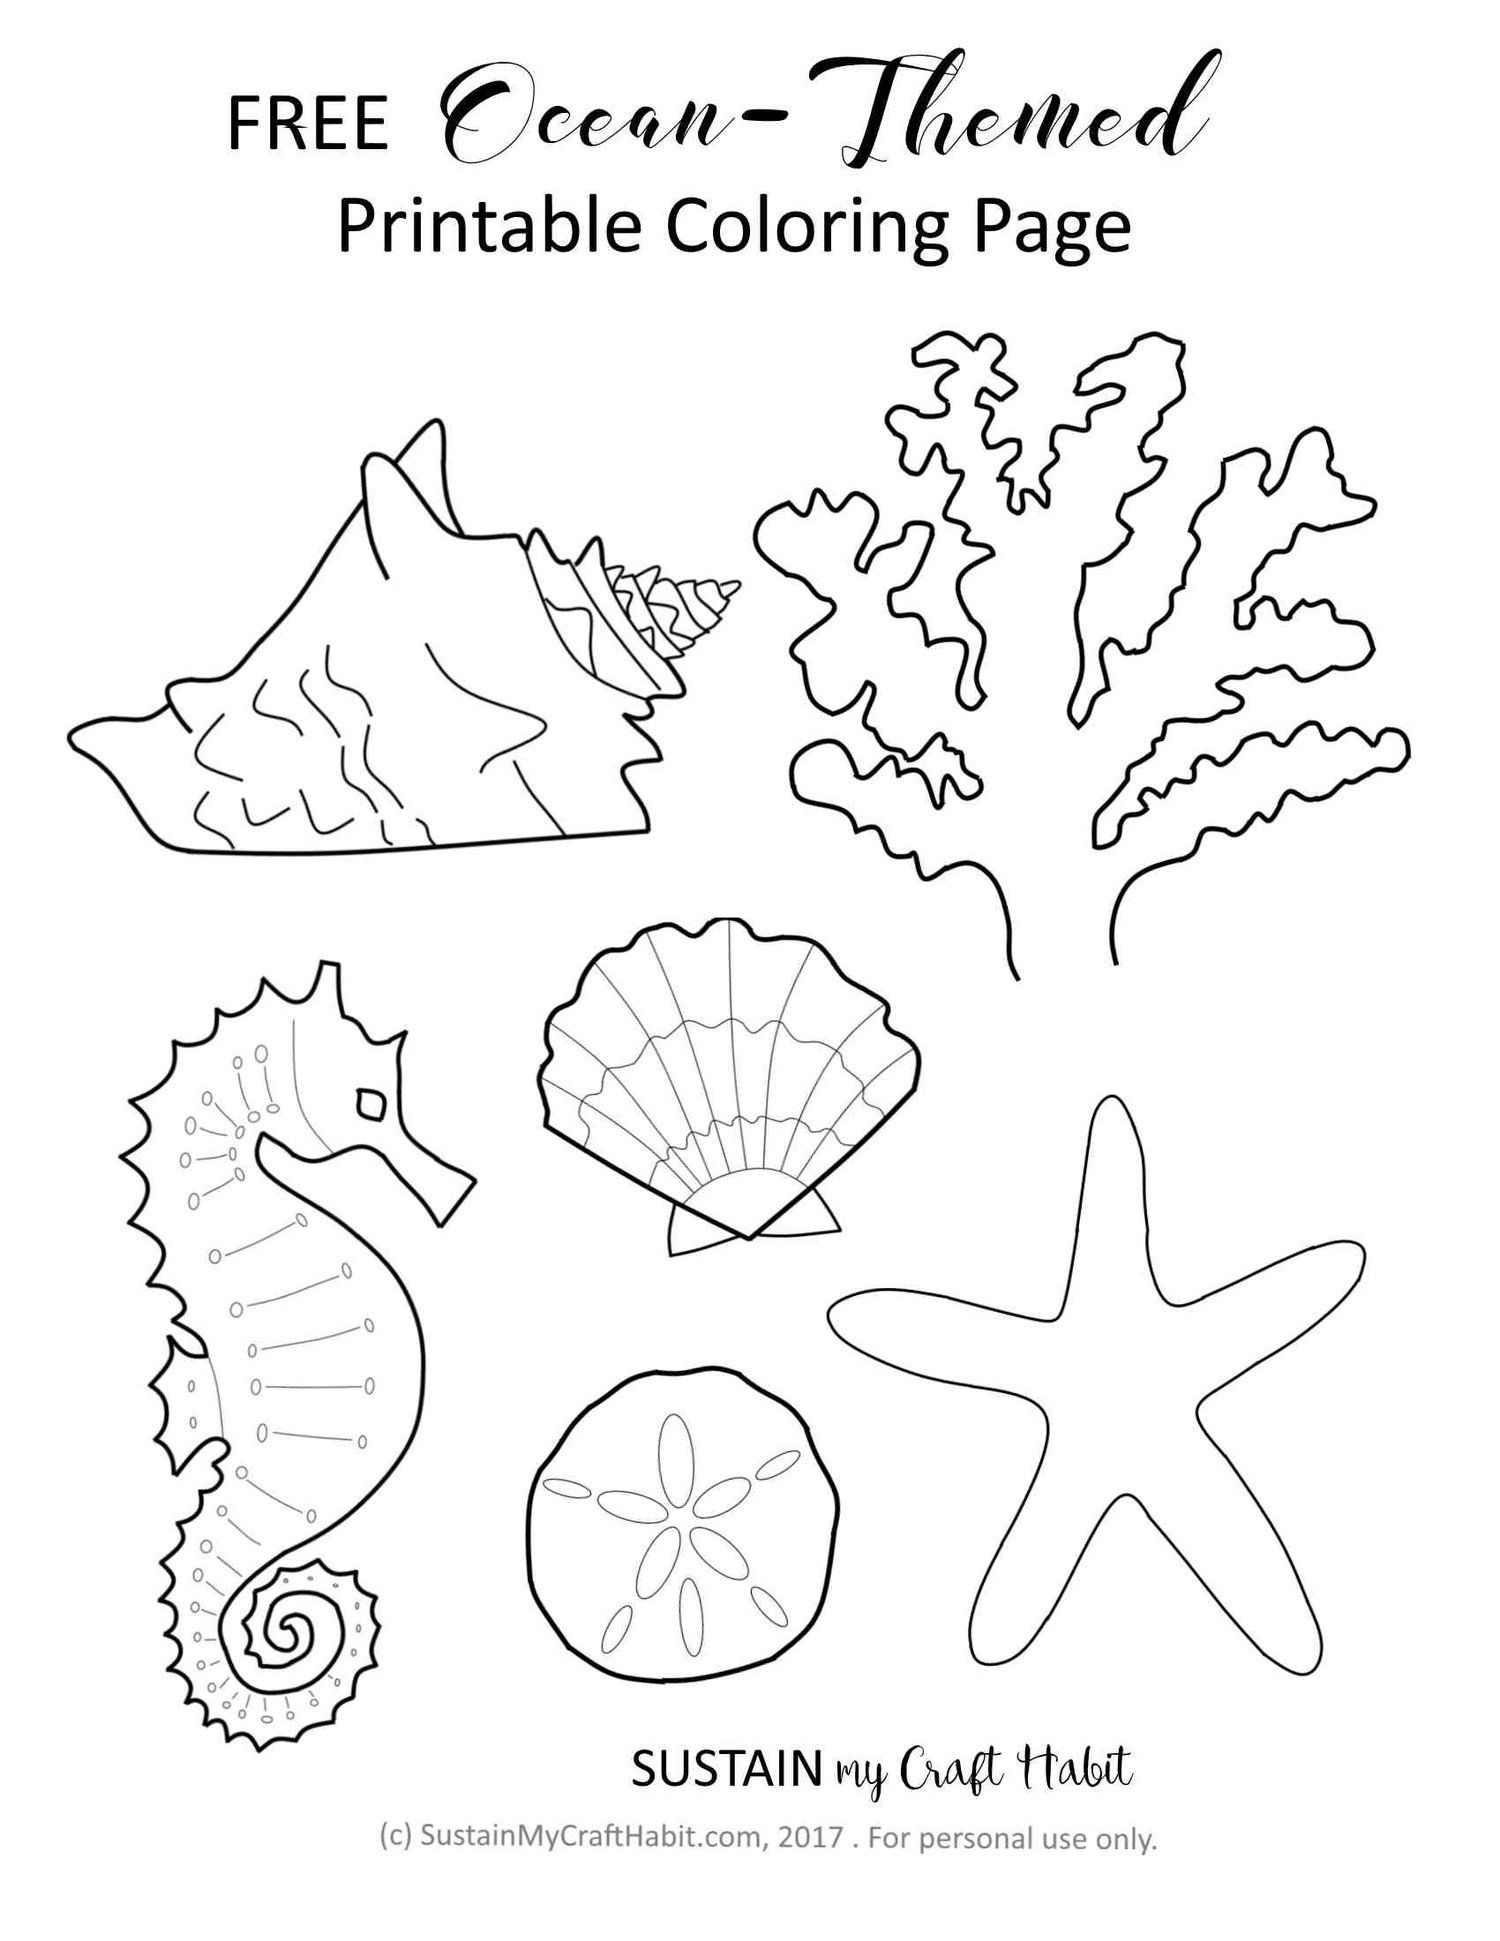 Free Ocean-Themed Coloring Page Printable! — Sustain My